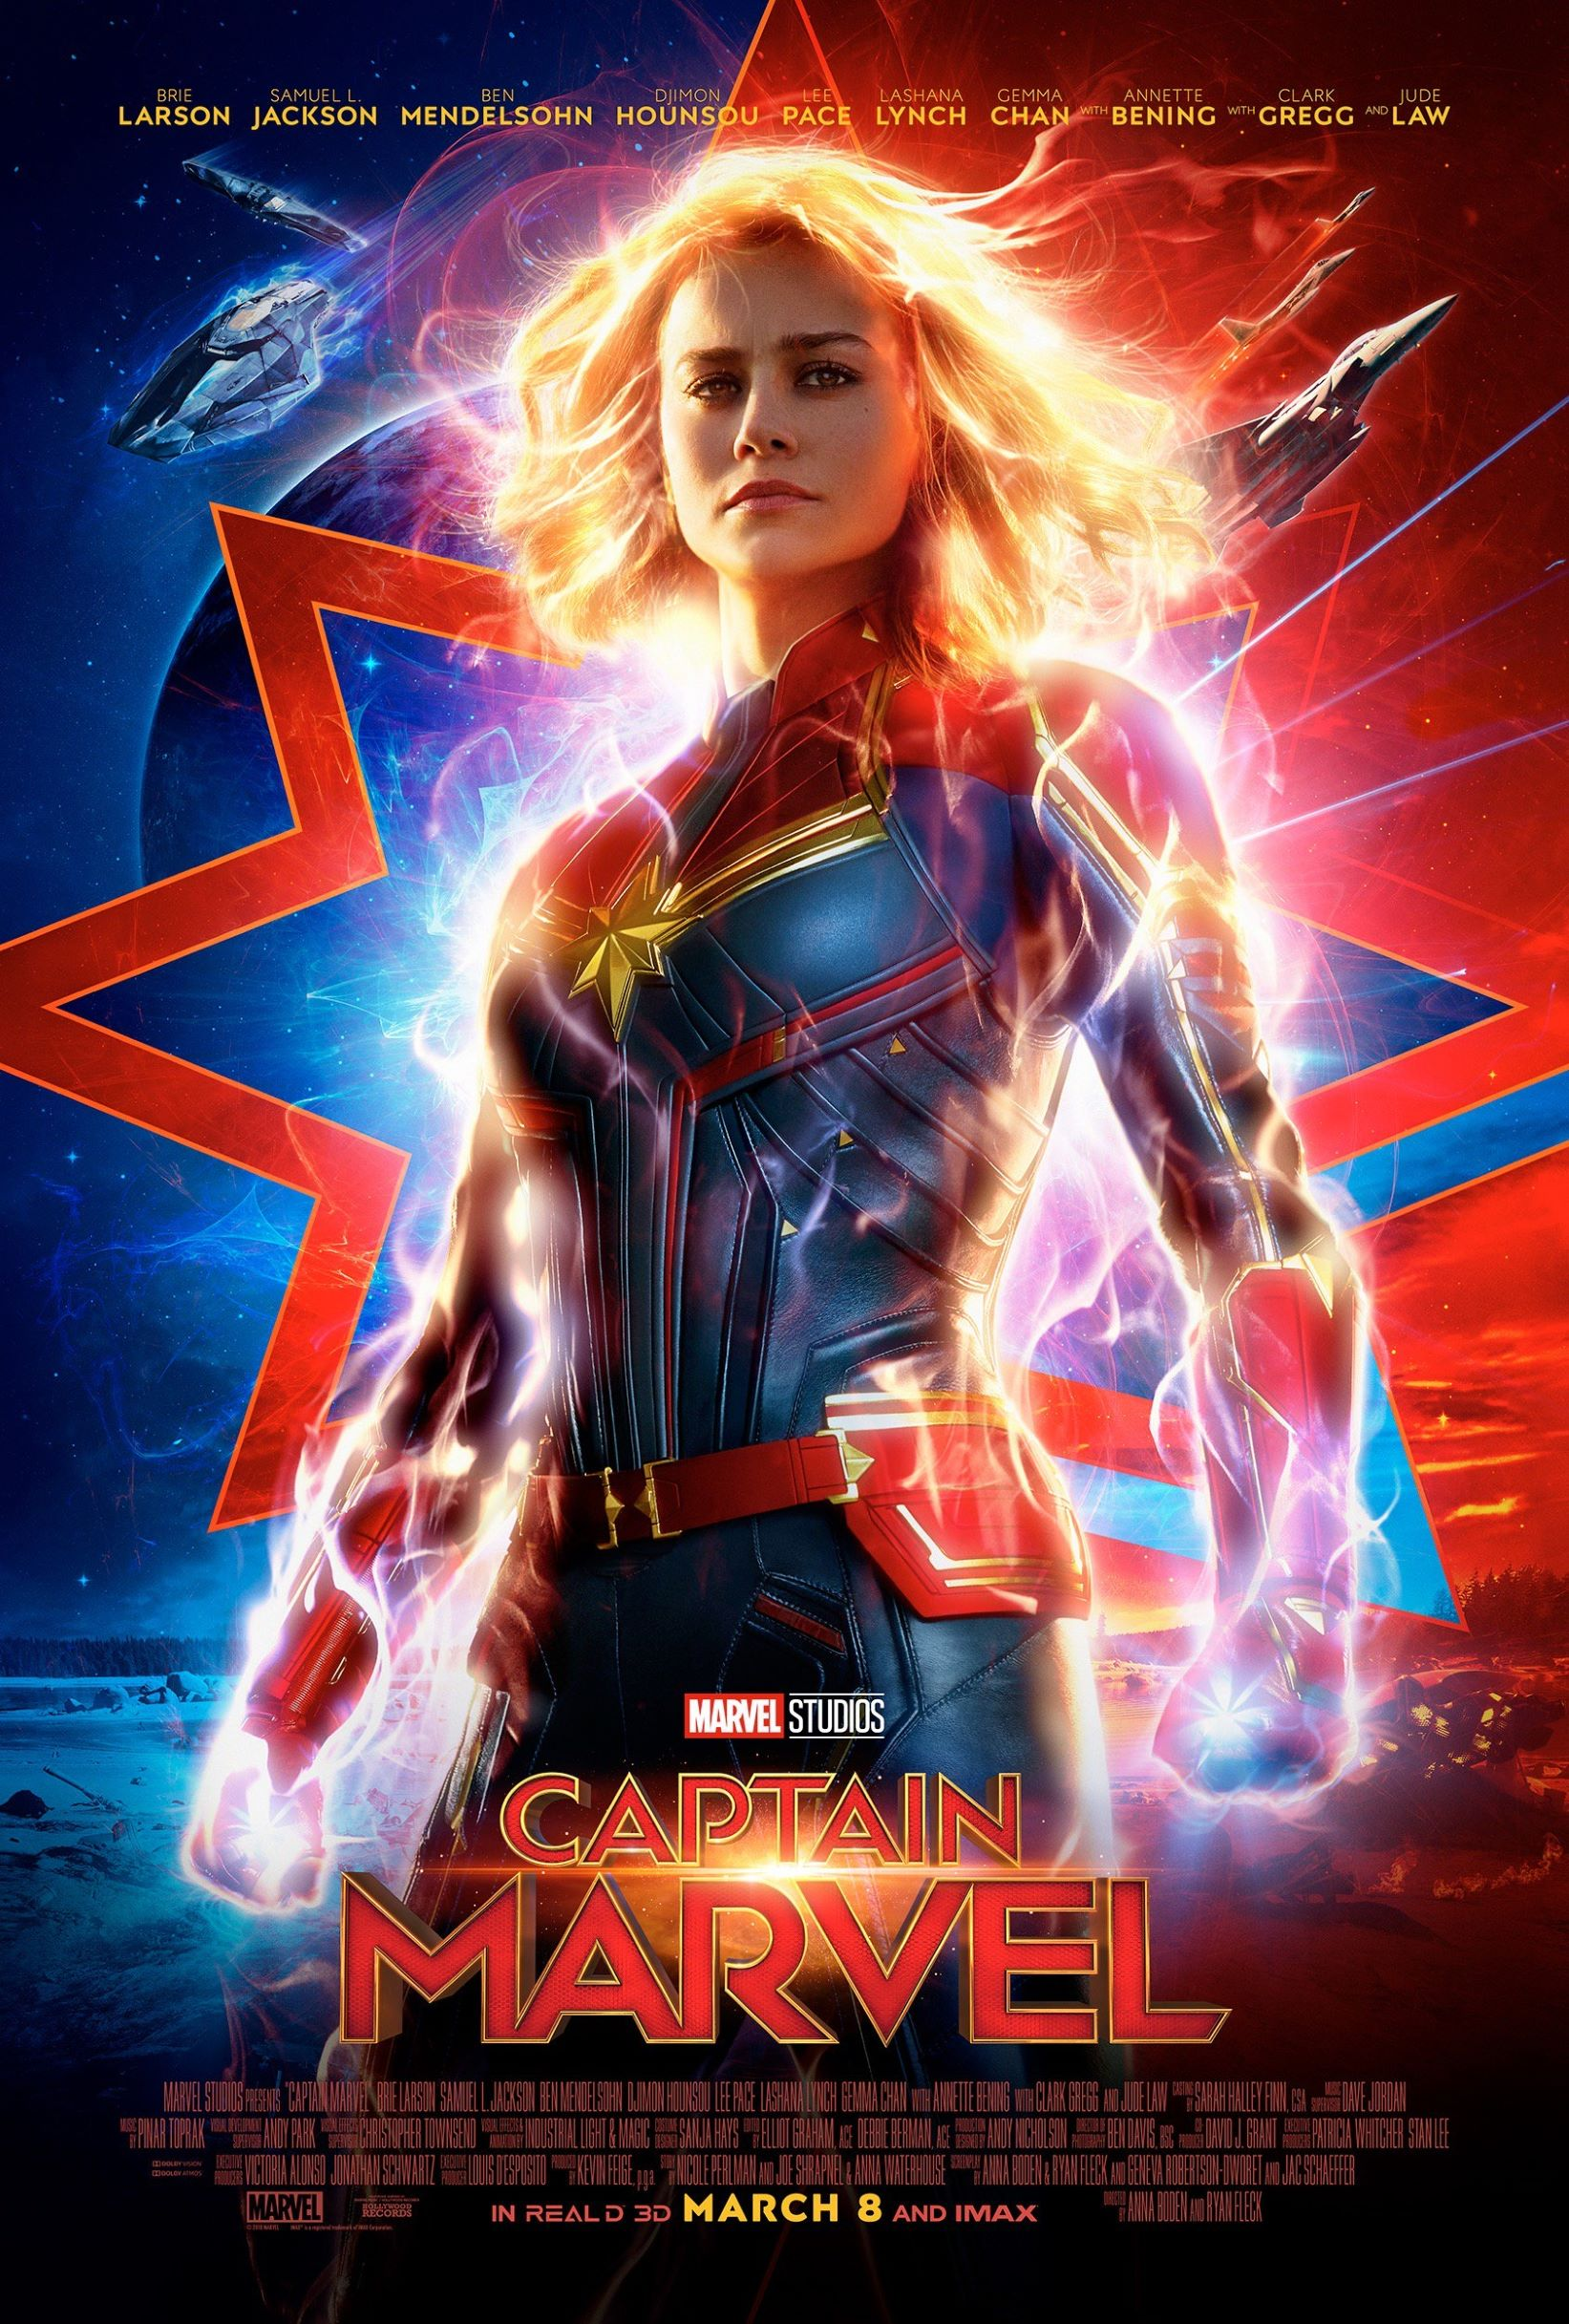 Review: Captain Marvel's gritty heroine relates to movie fans